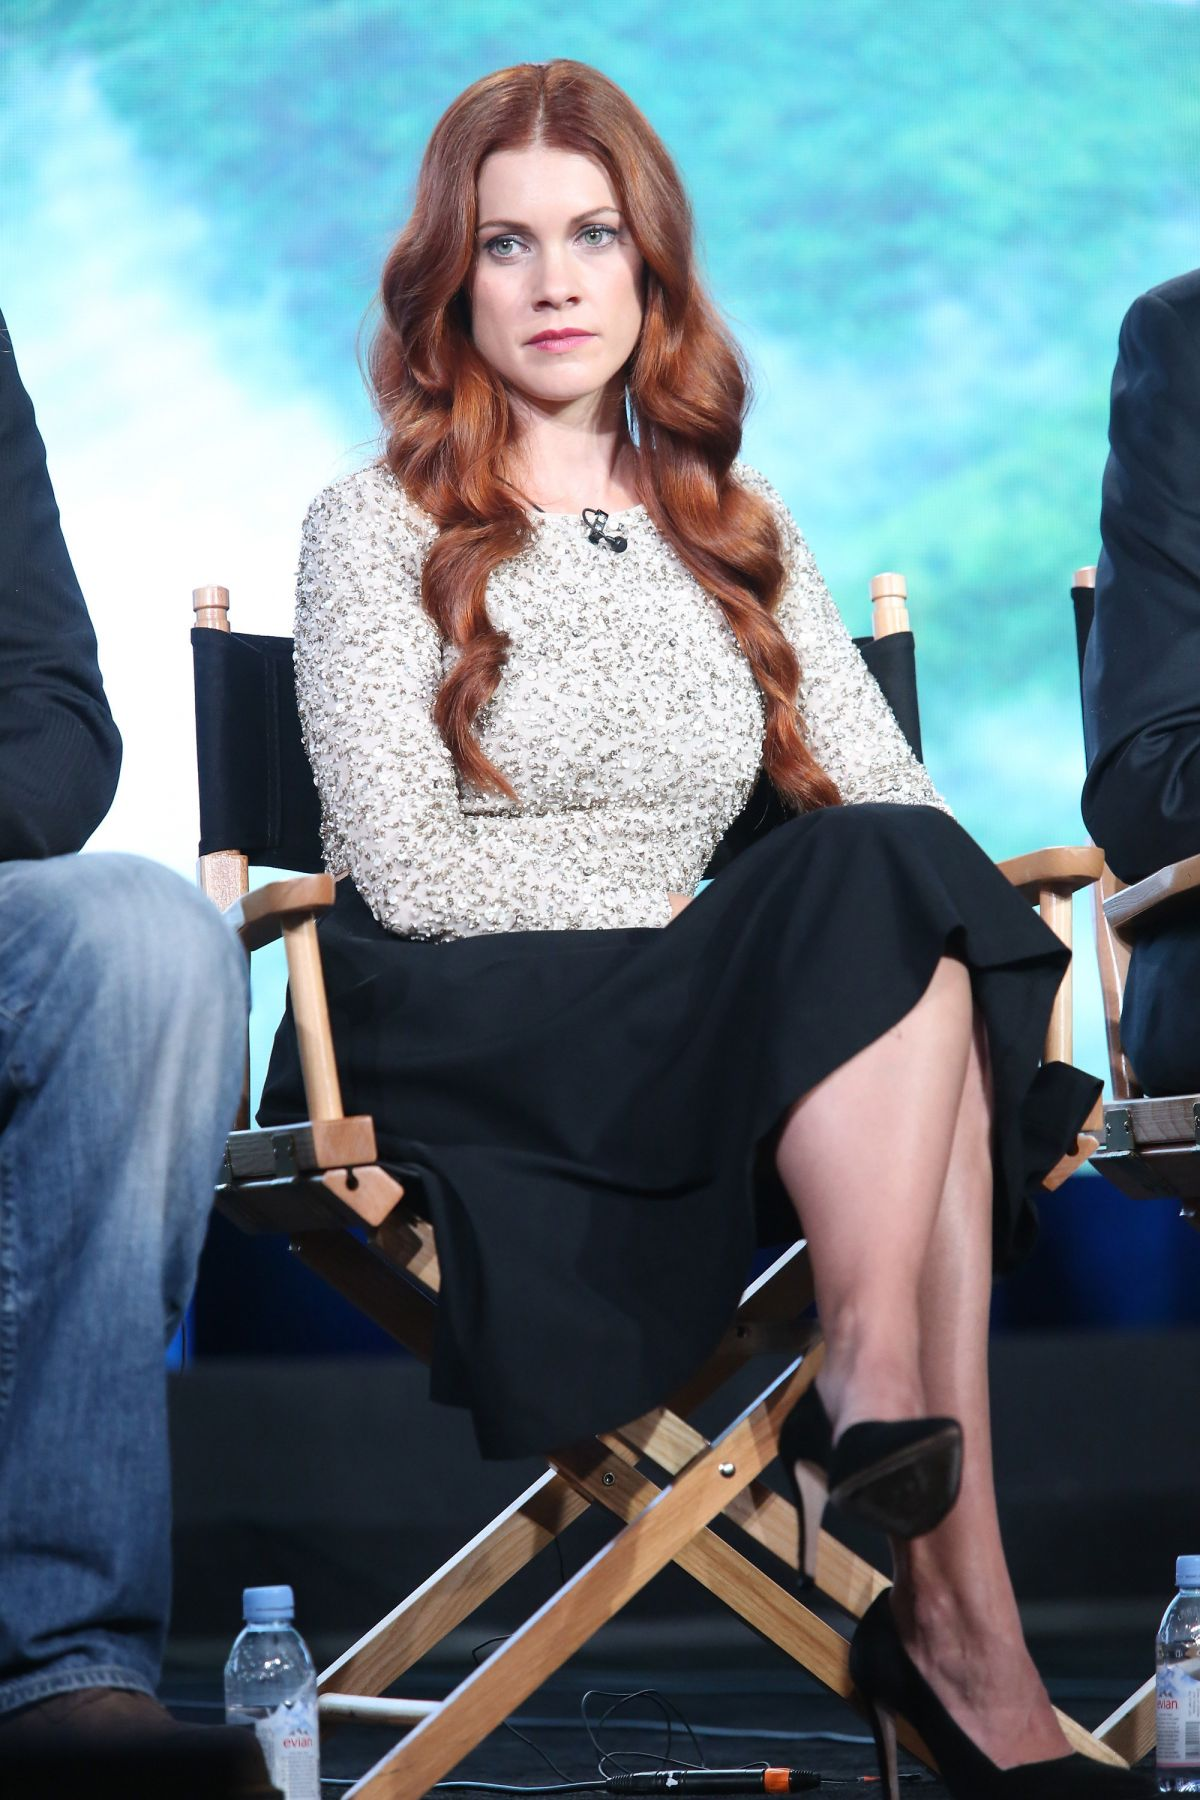 GILLIAN ALEXY at Outsider Panel at 2016 Winter TCA Tour in Pasadena 01/08/2016